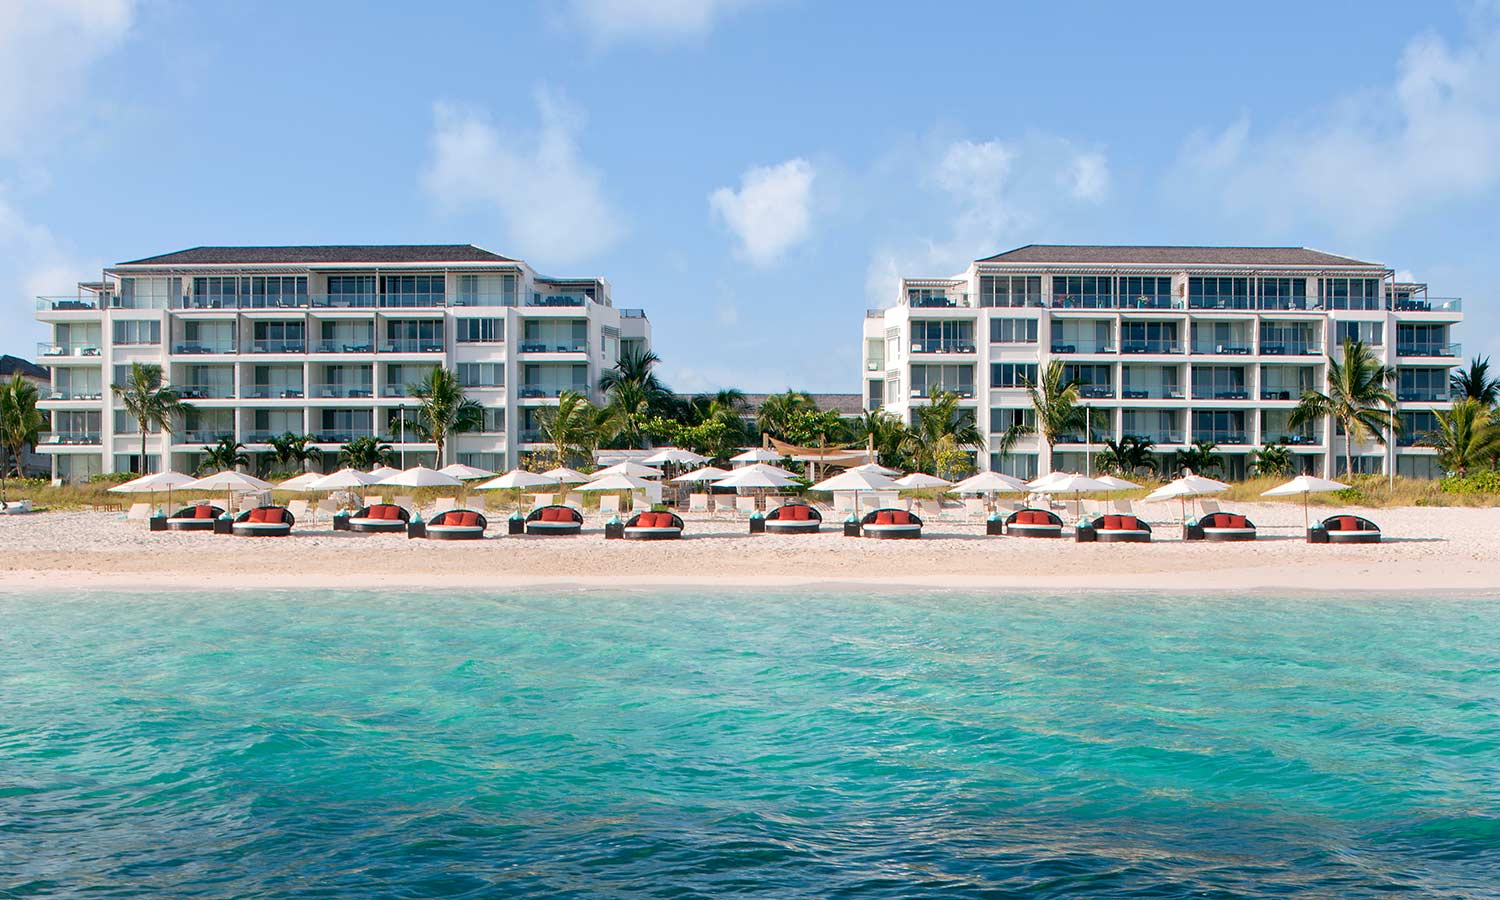 Gansevoort beachfront hotel in Turks and Caicos Islands